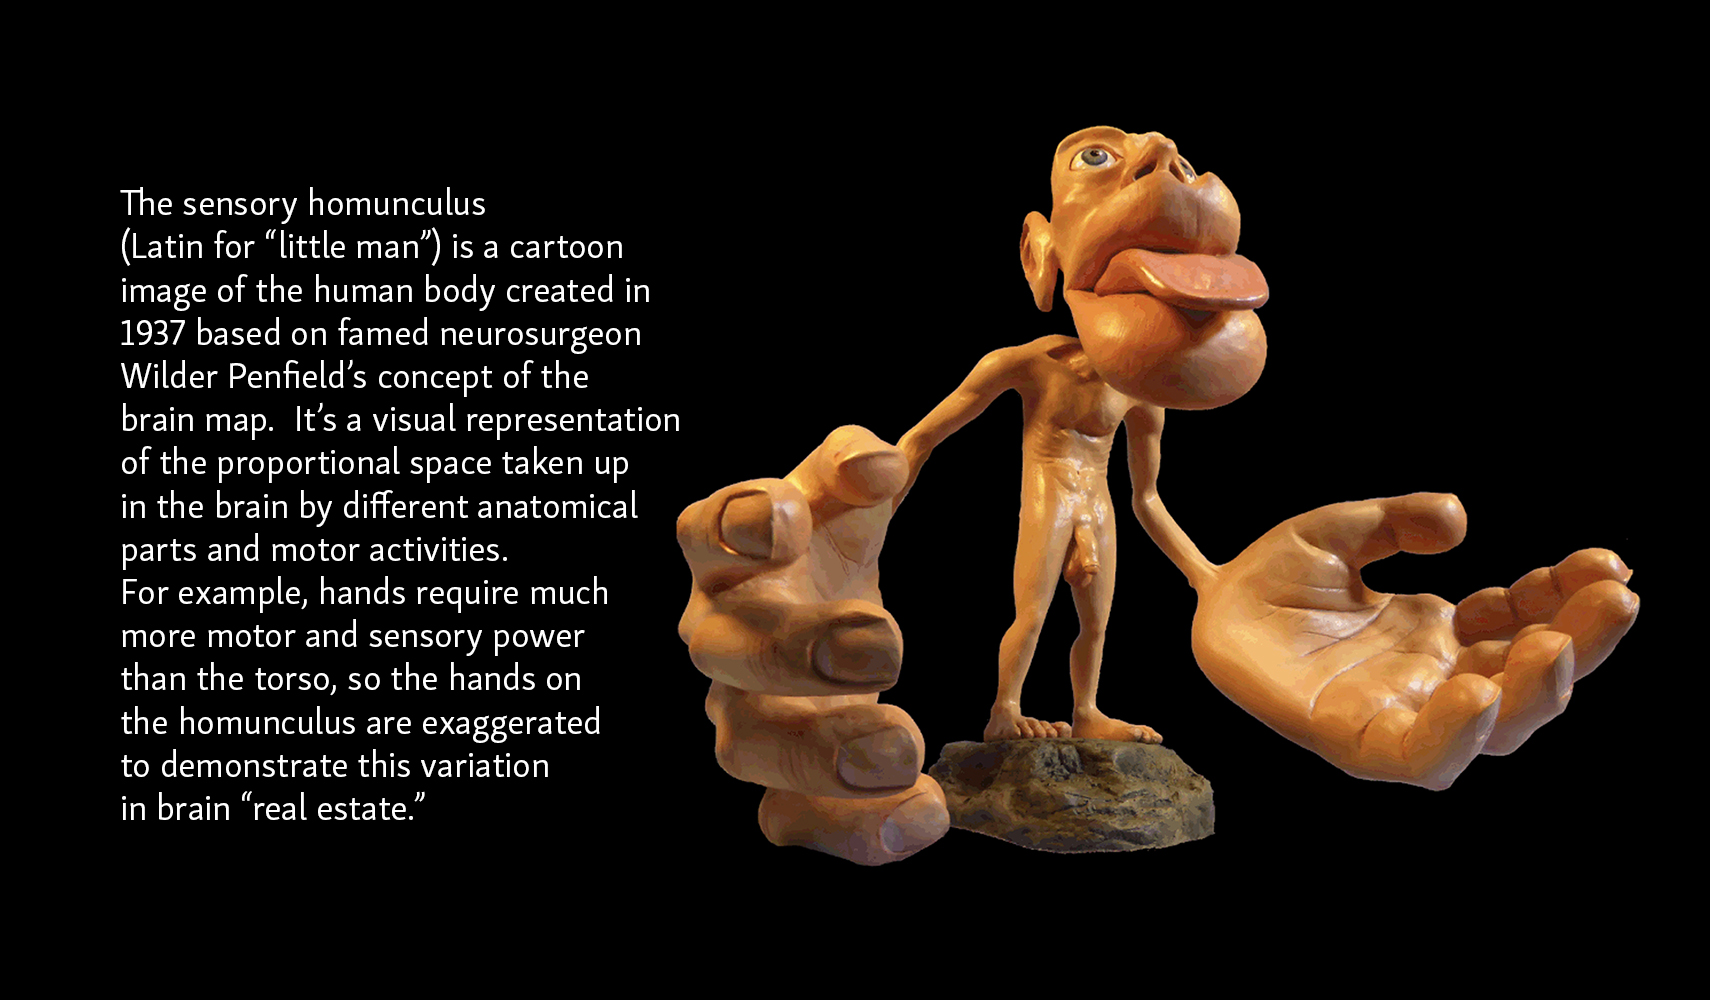 Sensory Homunculus with description of exaggerated sensory sensations in hands, lips, and tongue